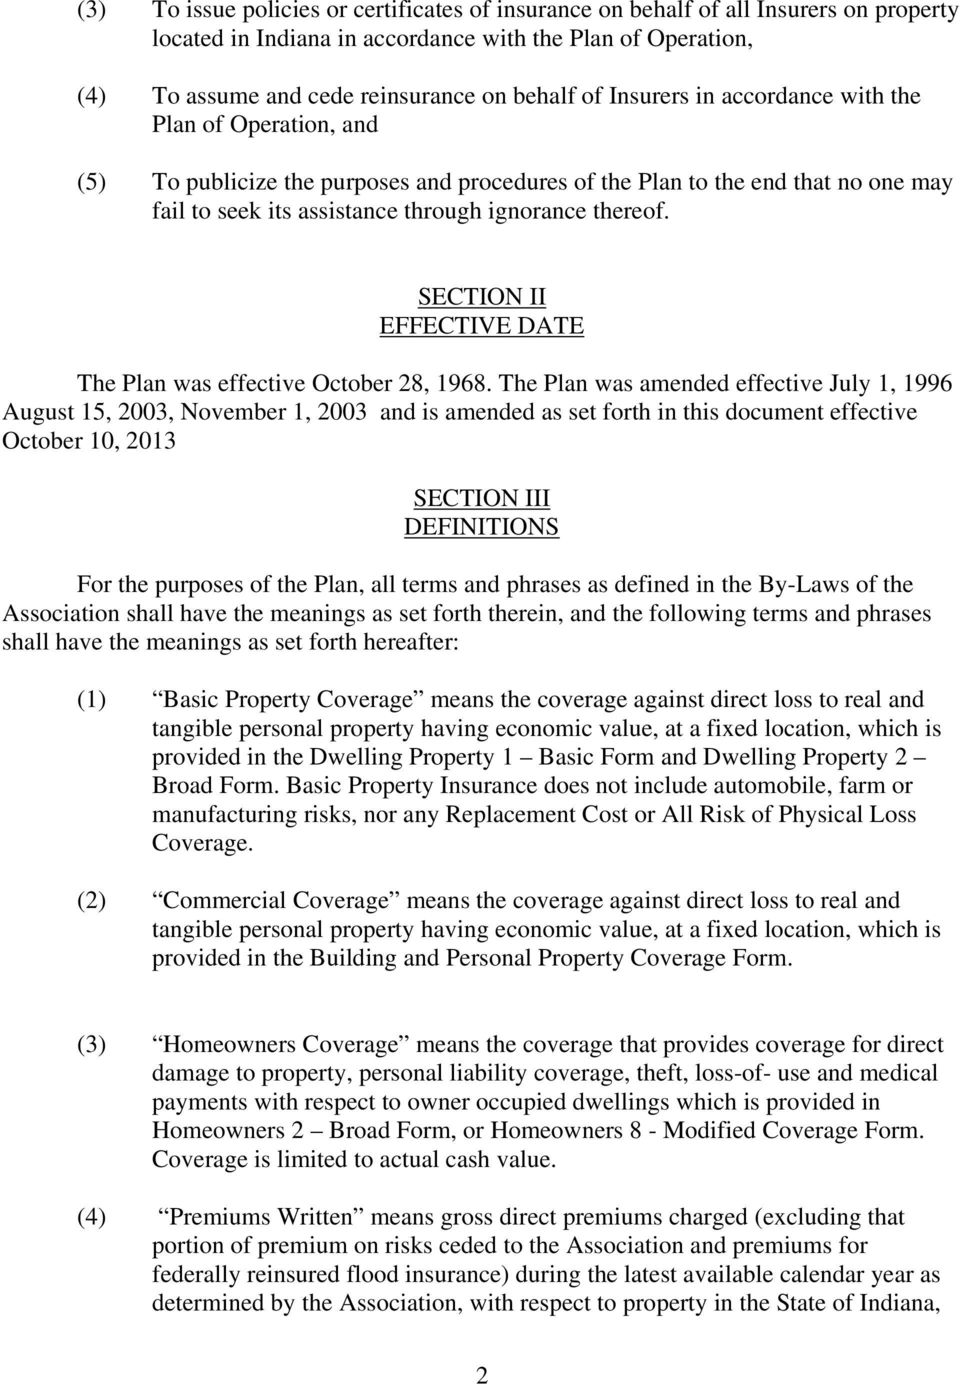 SECTION II EFFECTIVE DATE The Plan was effective October 28, 1968.